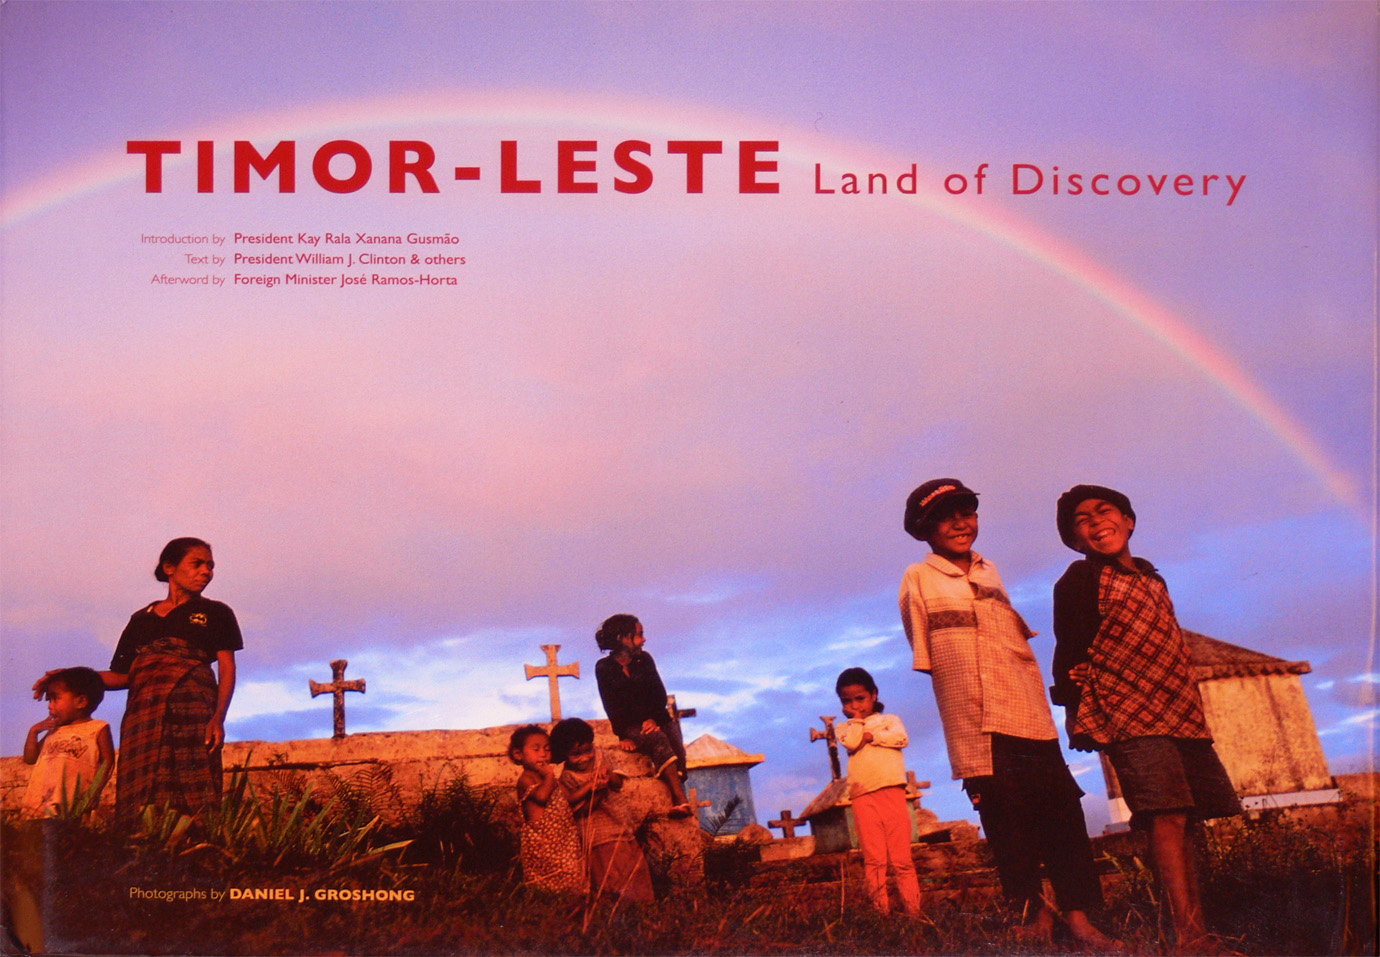 Timor-Leste: Land of Discovery